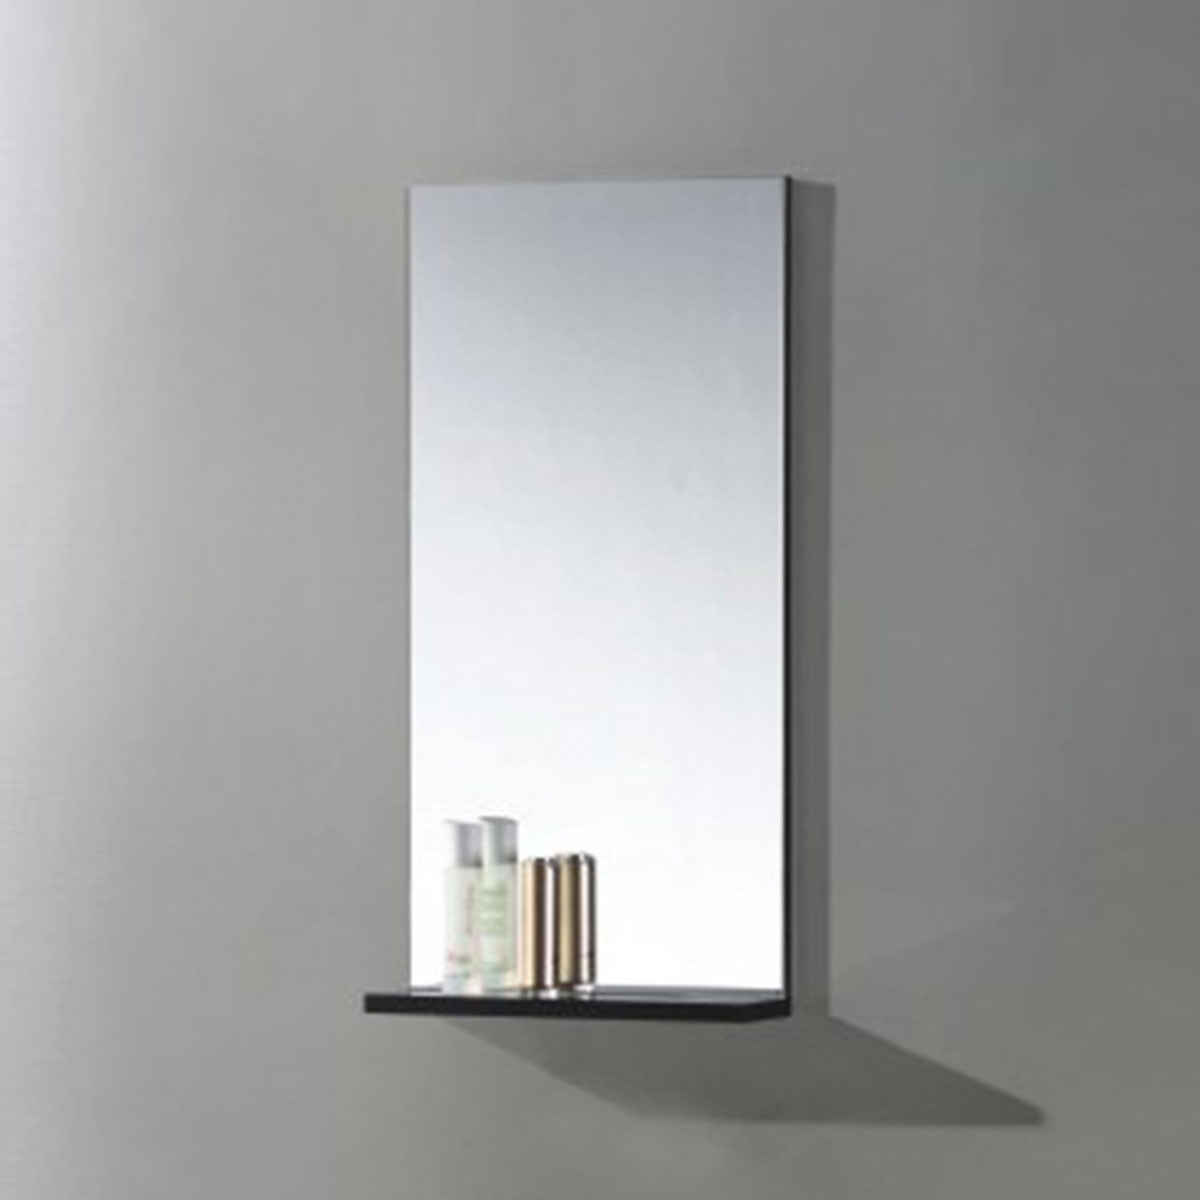 16 x 32 In. Bathroom Mirror with Shelf (MS400B-M)